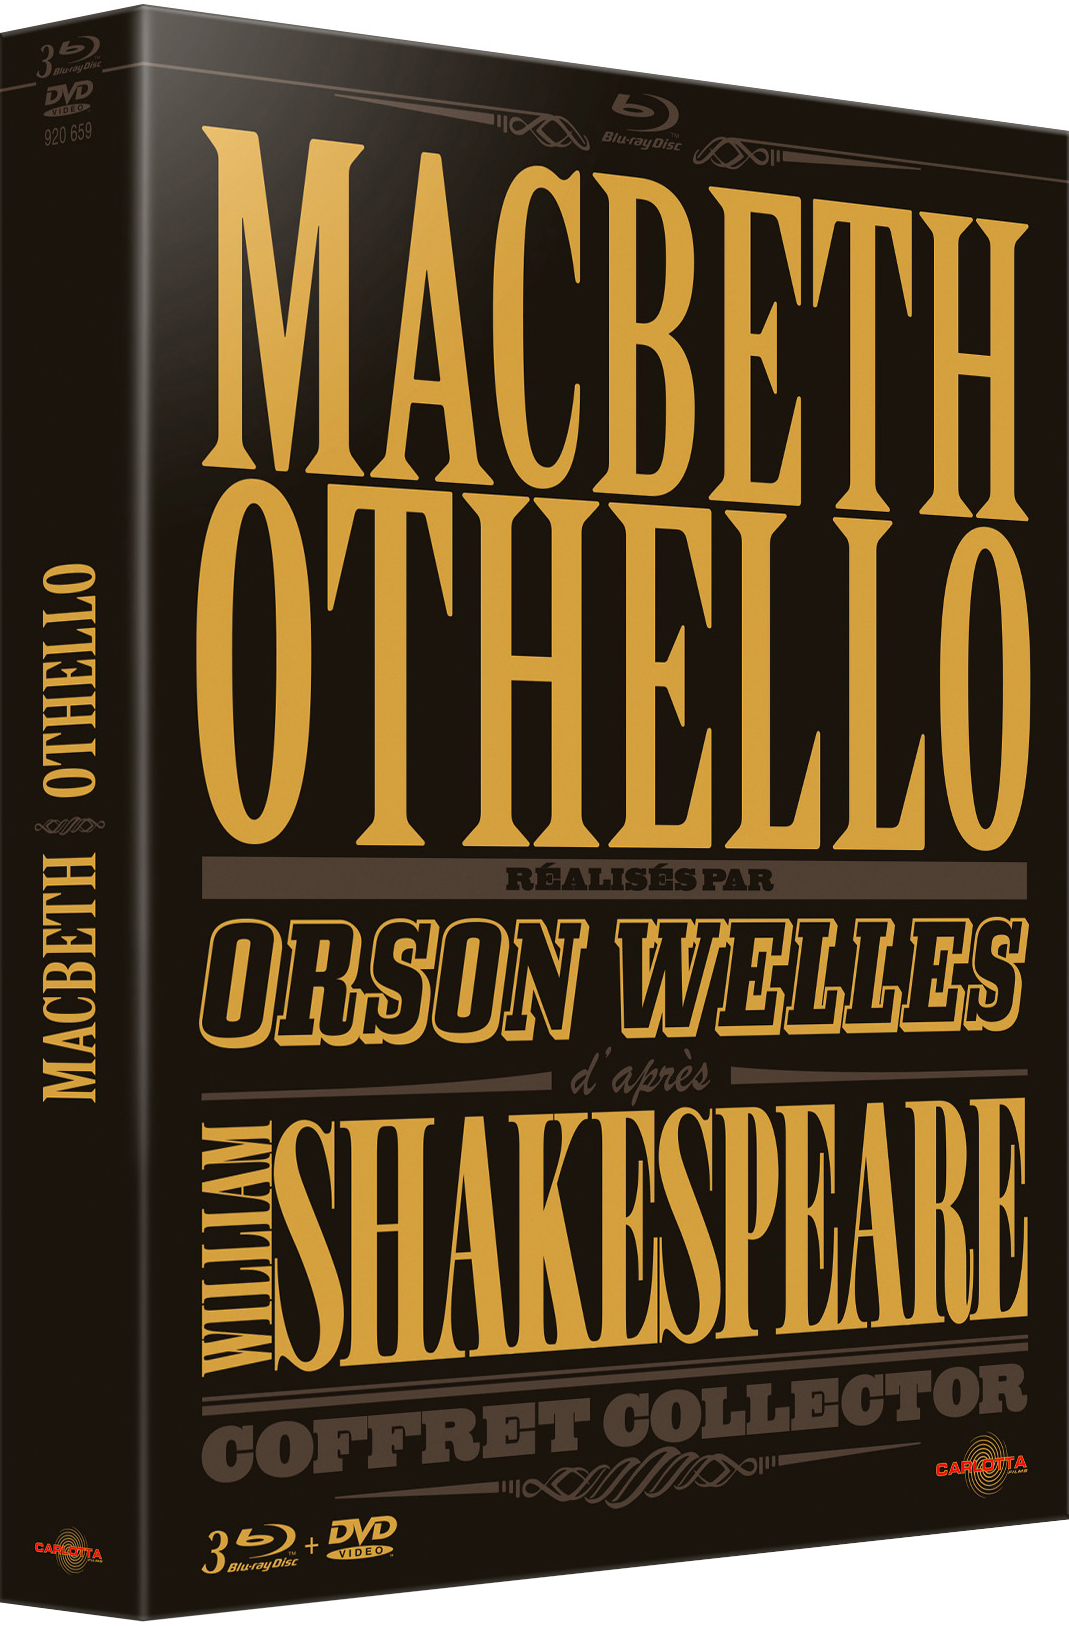 Othello and macbeth essays